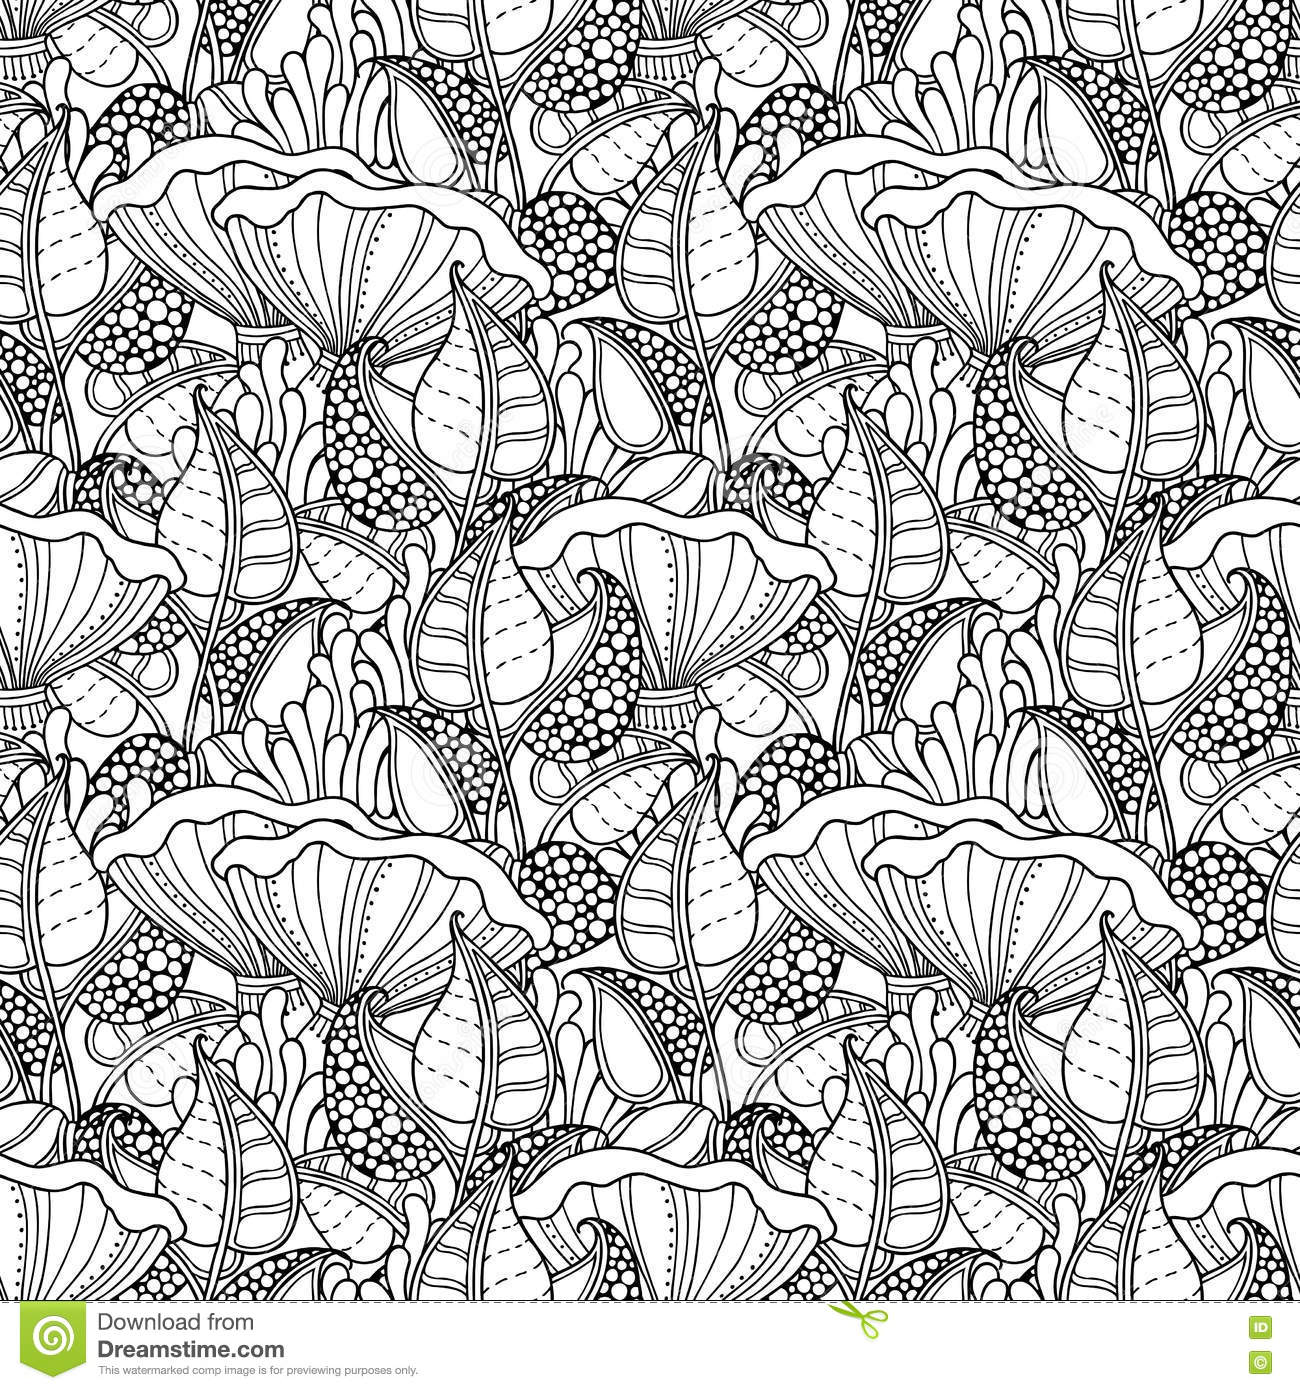 Mushroom seamless pattern cartoon vector cartoondealer for Where the red fern grows coloring pages